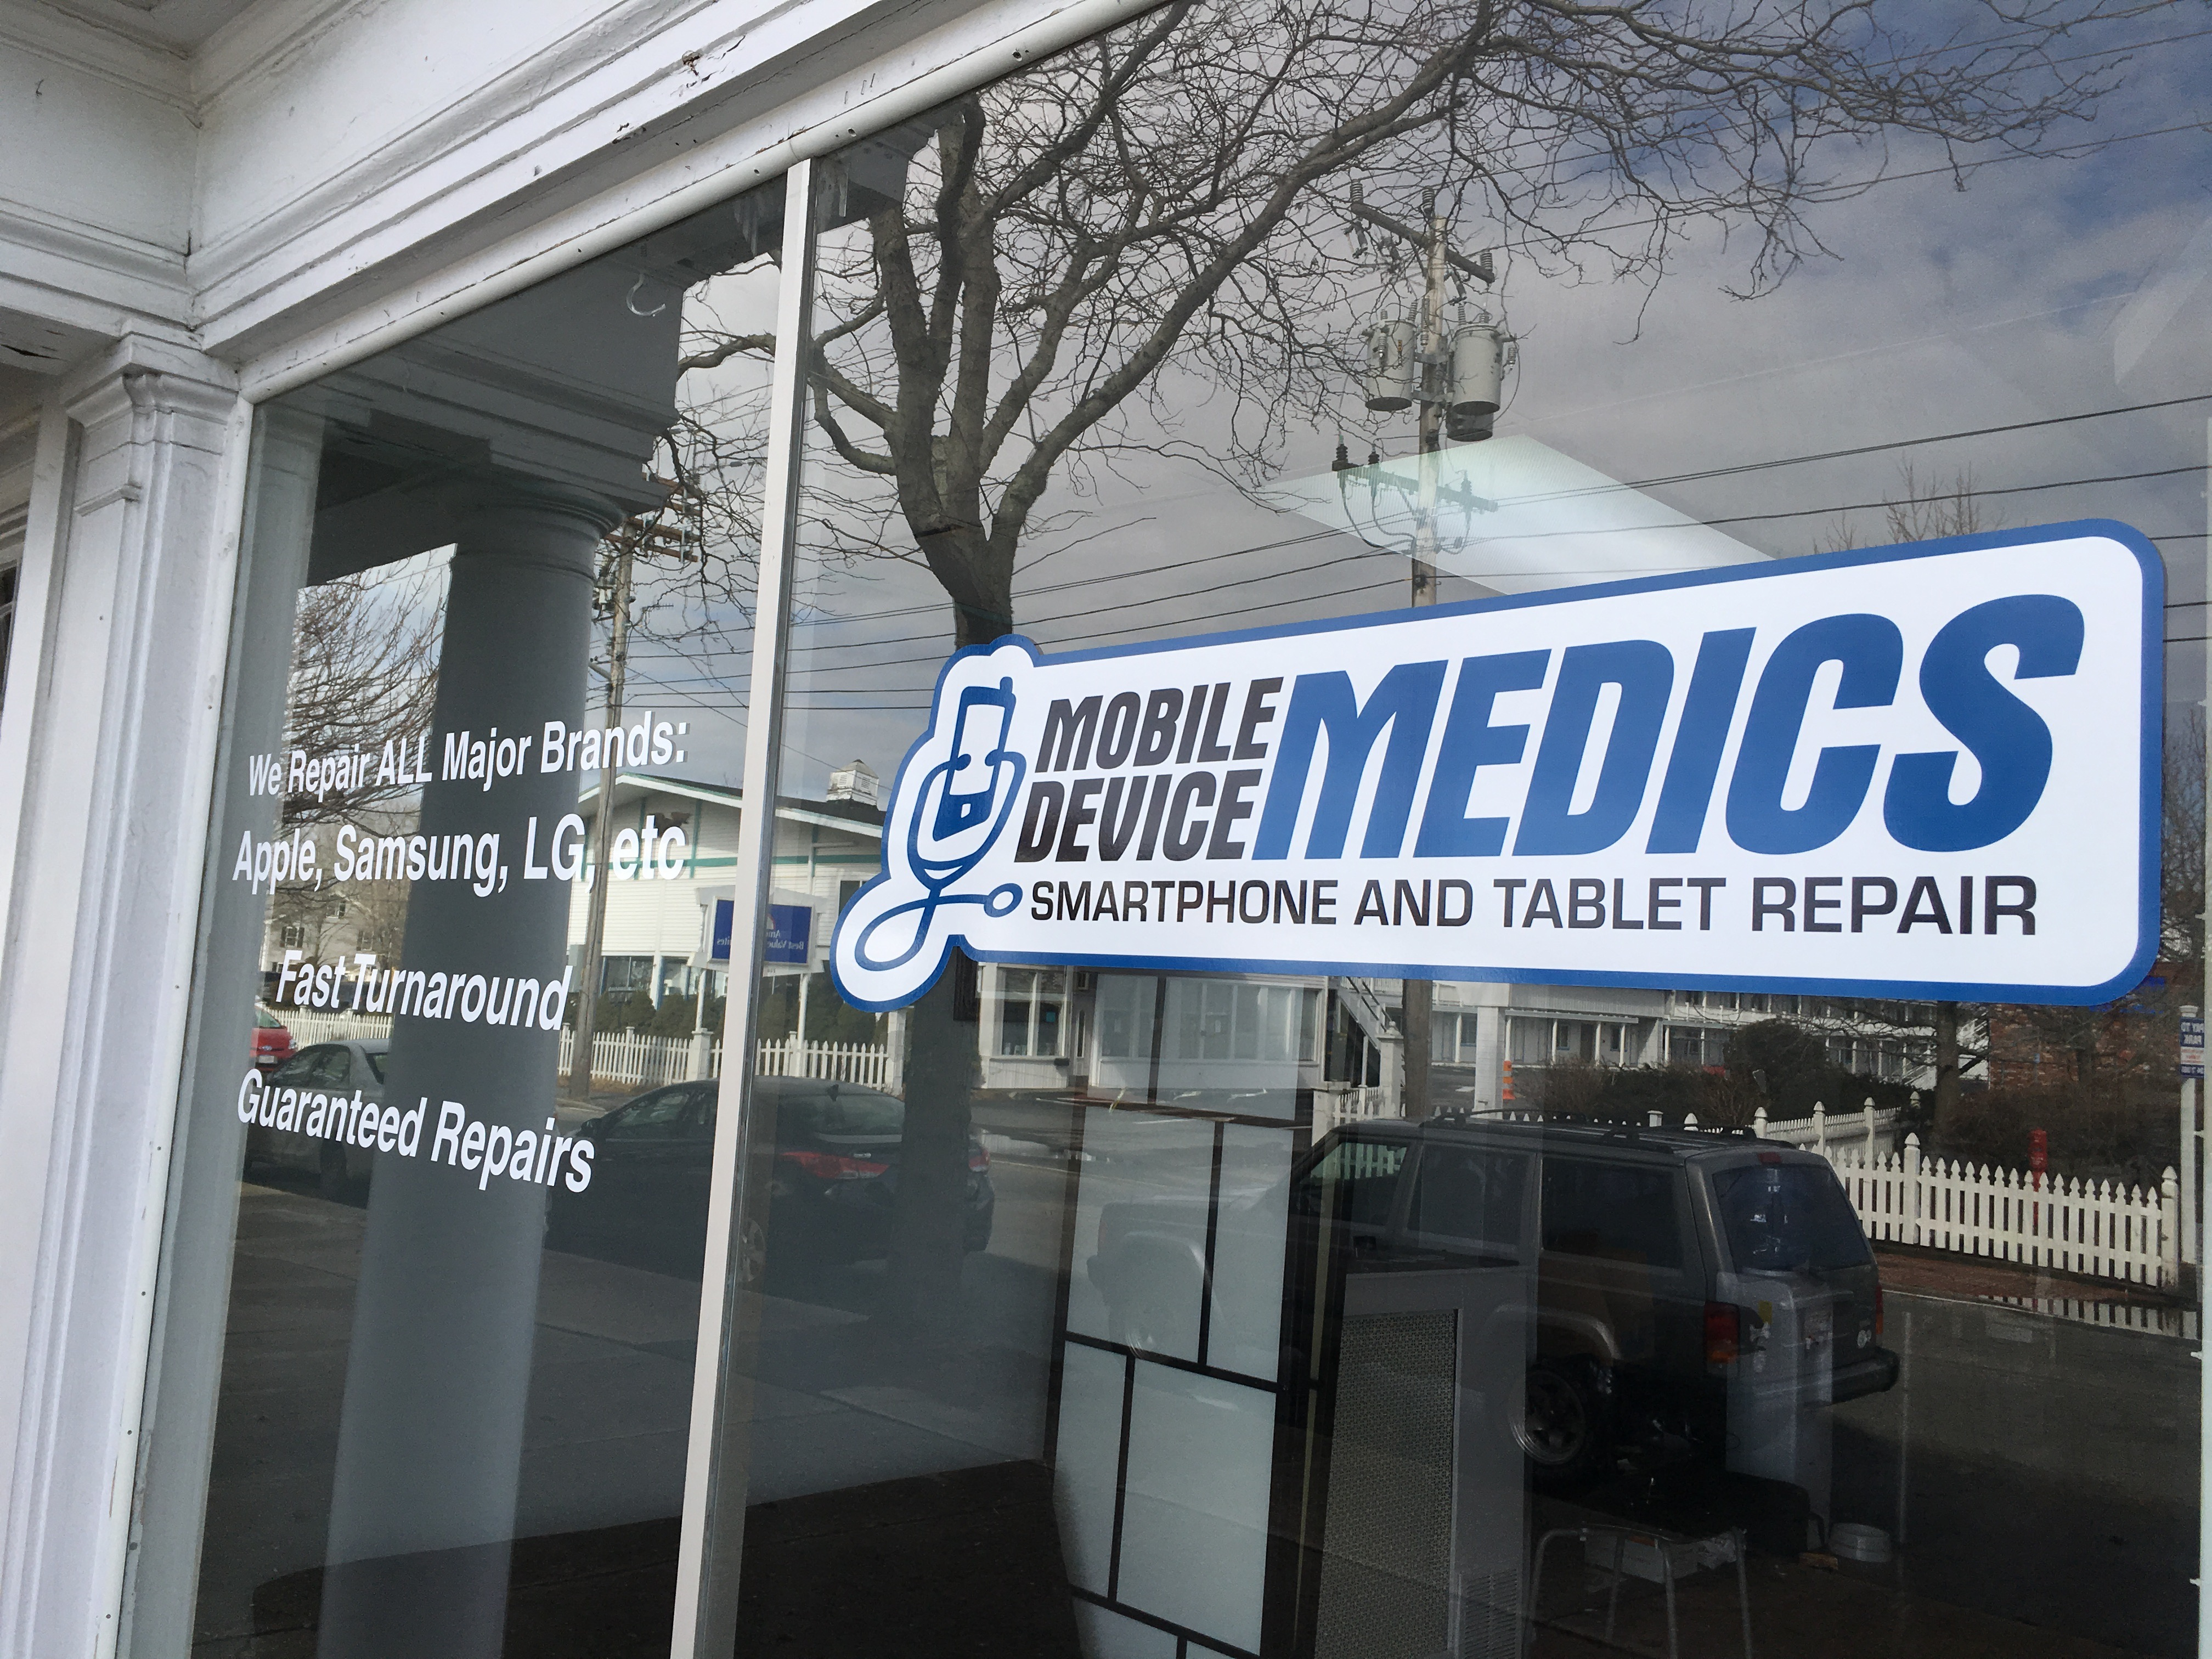 Smartphone Cell Phone Repair Barnstable Hyannis Cape Cod - Mobile Device Medics - Smart Phone